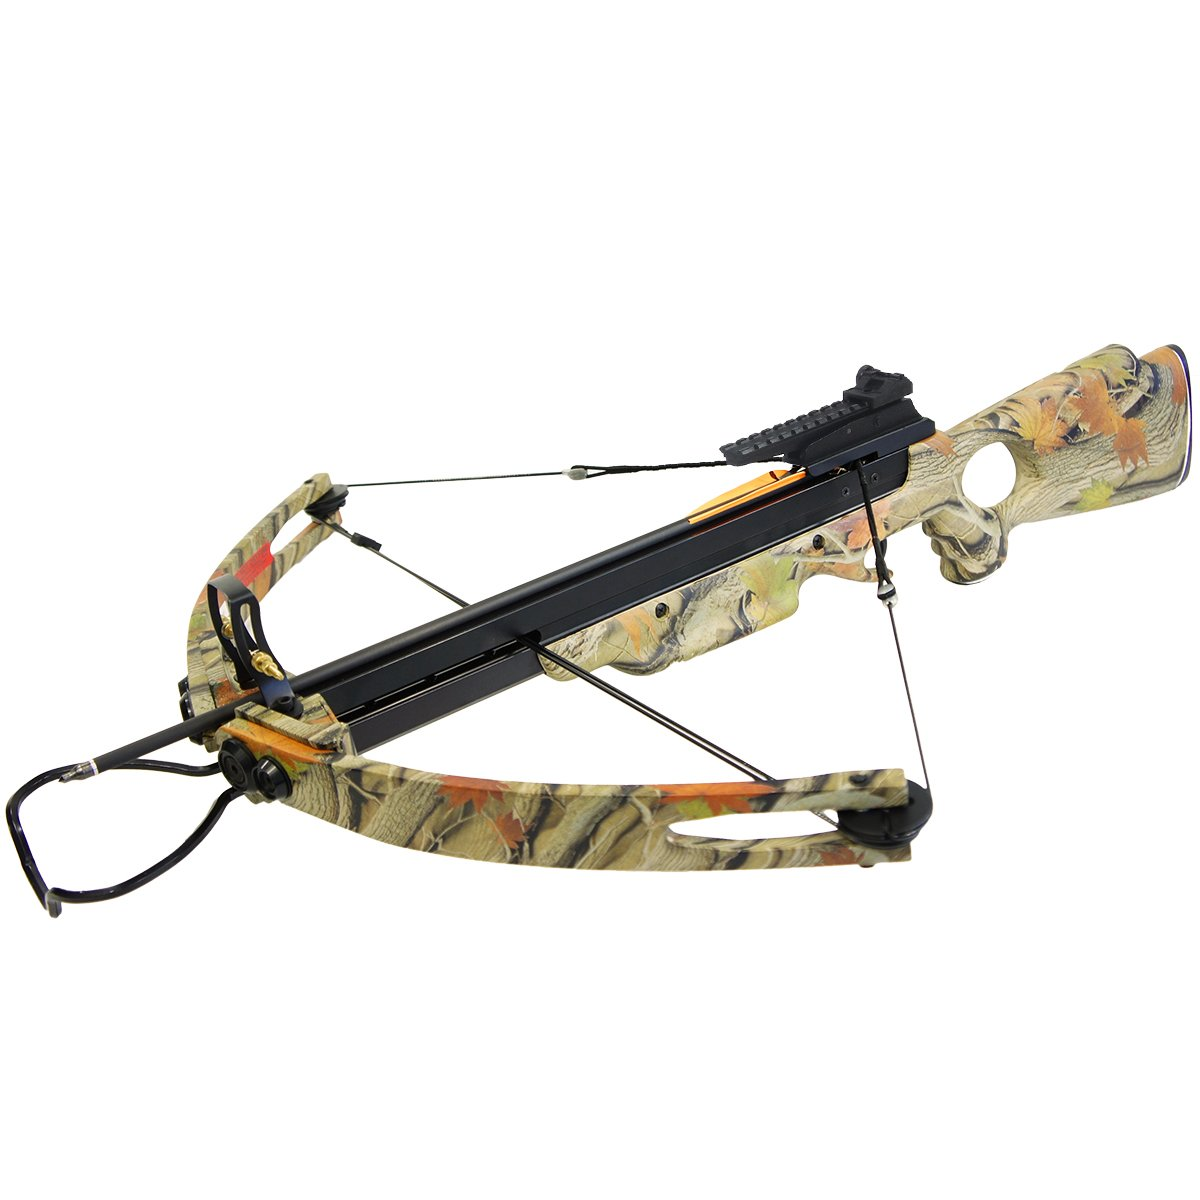 150 lb Autumn Camouflage Camo Hunting Compound Crossbow Archery Bow +Rail Lube +8 Bolts / Arrows 180 175 80 50